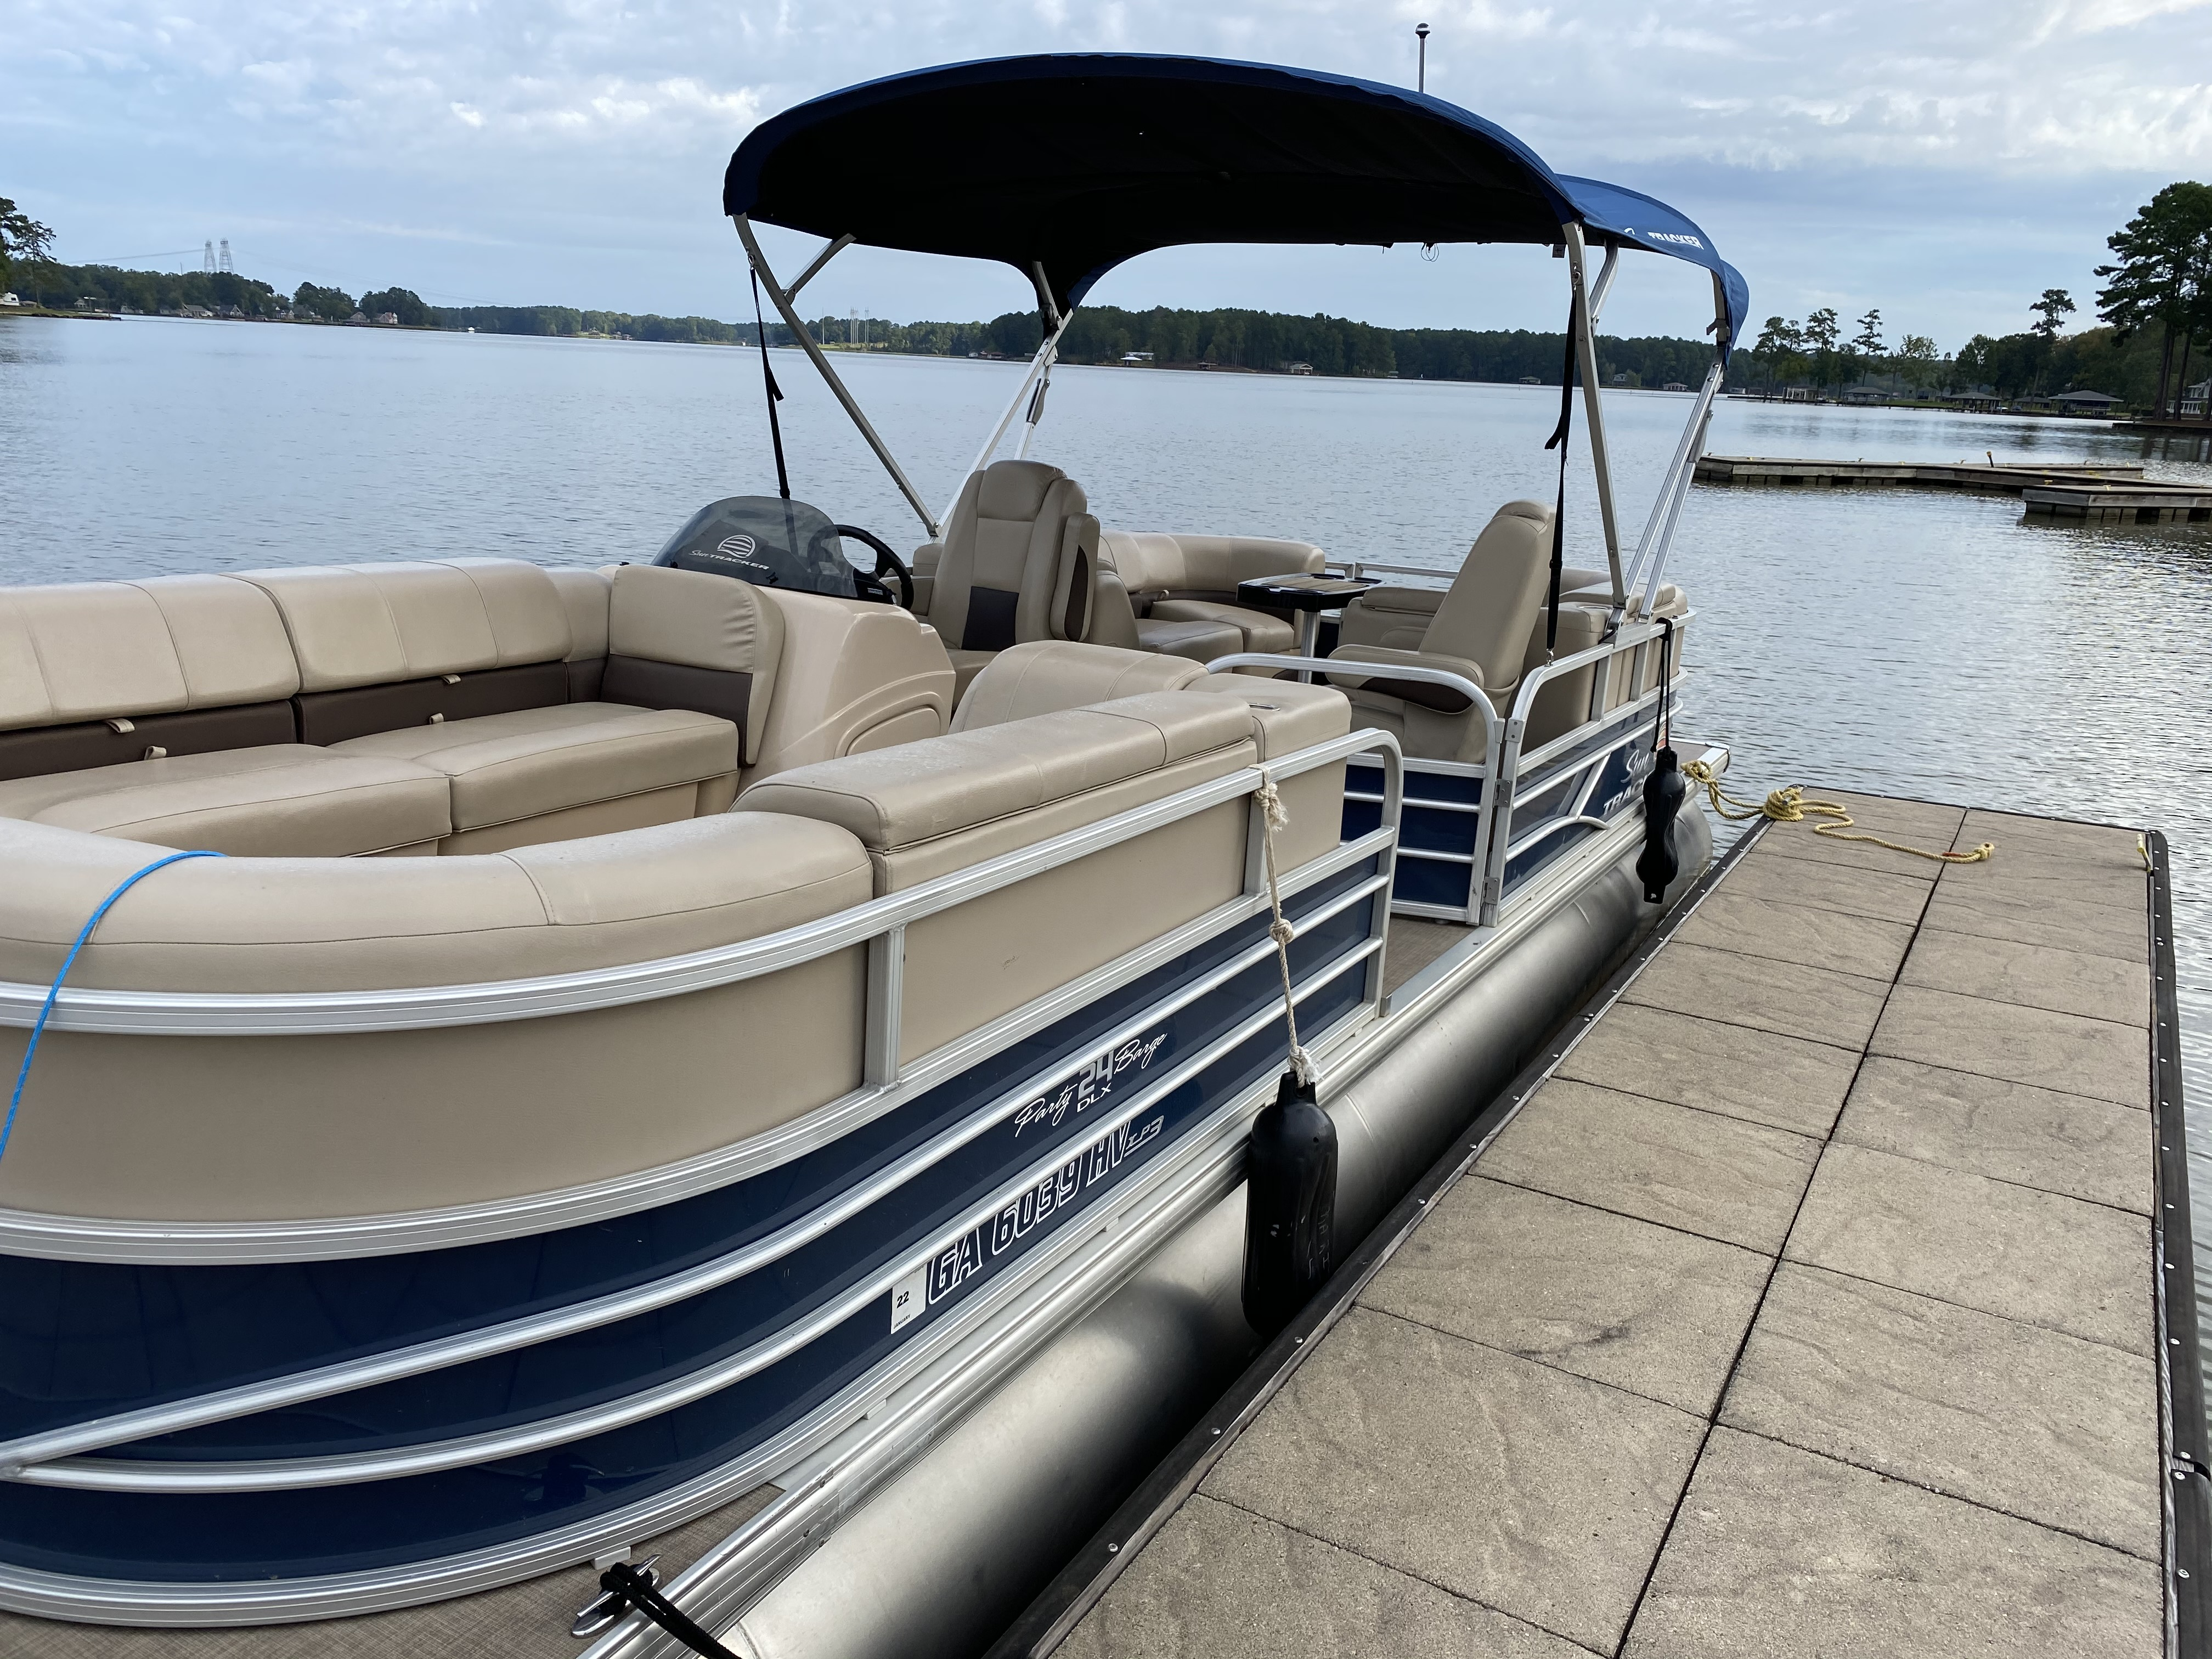 2019 Sun Tracker boat for sale, model of the boat is PARTY BARGE 24 XP3 w/ Mercury 150Hp 4S & Image # 23 of 24